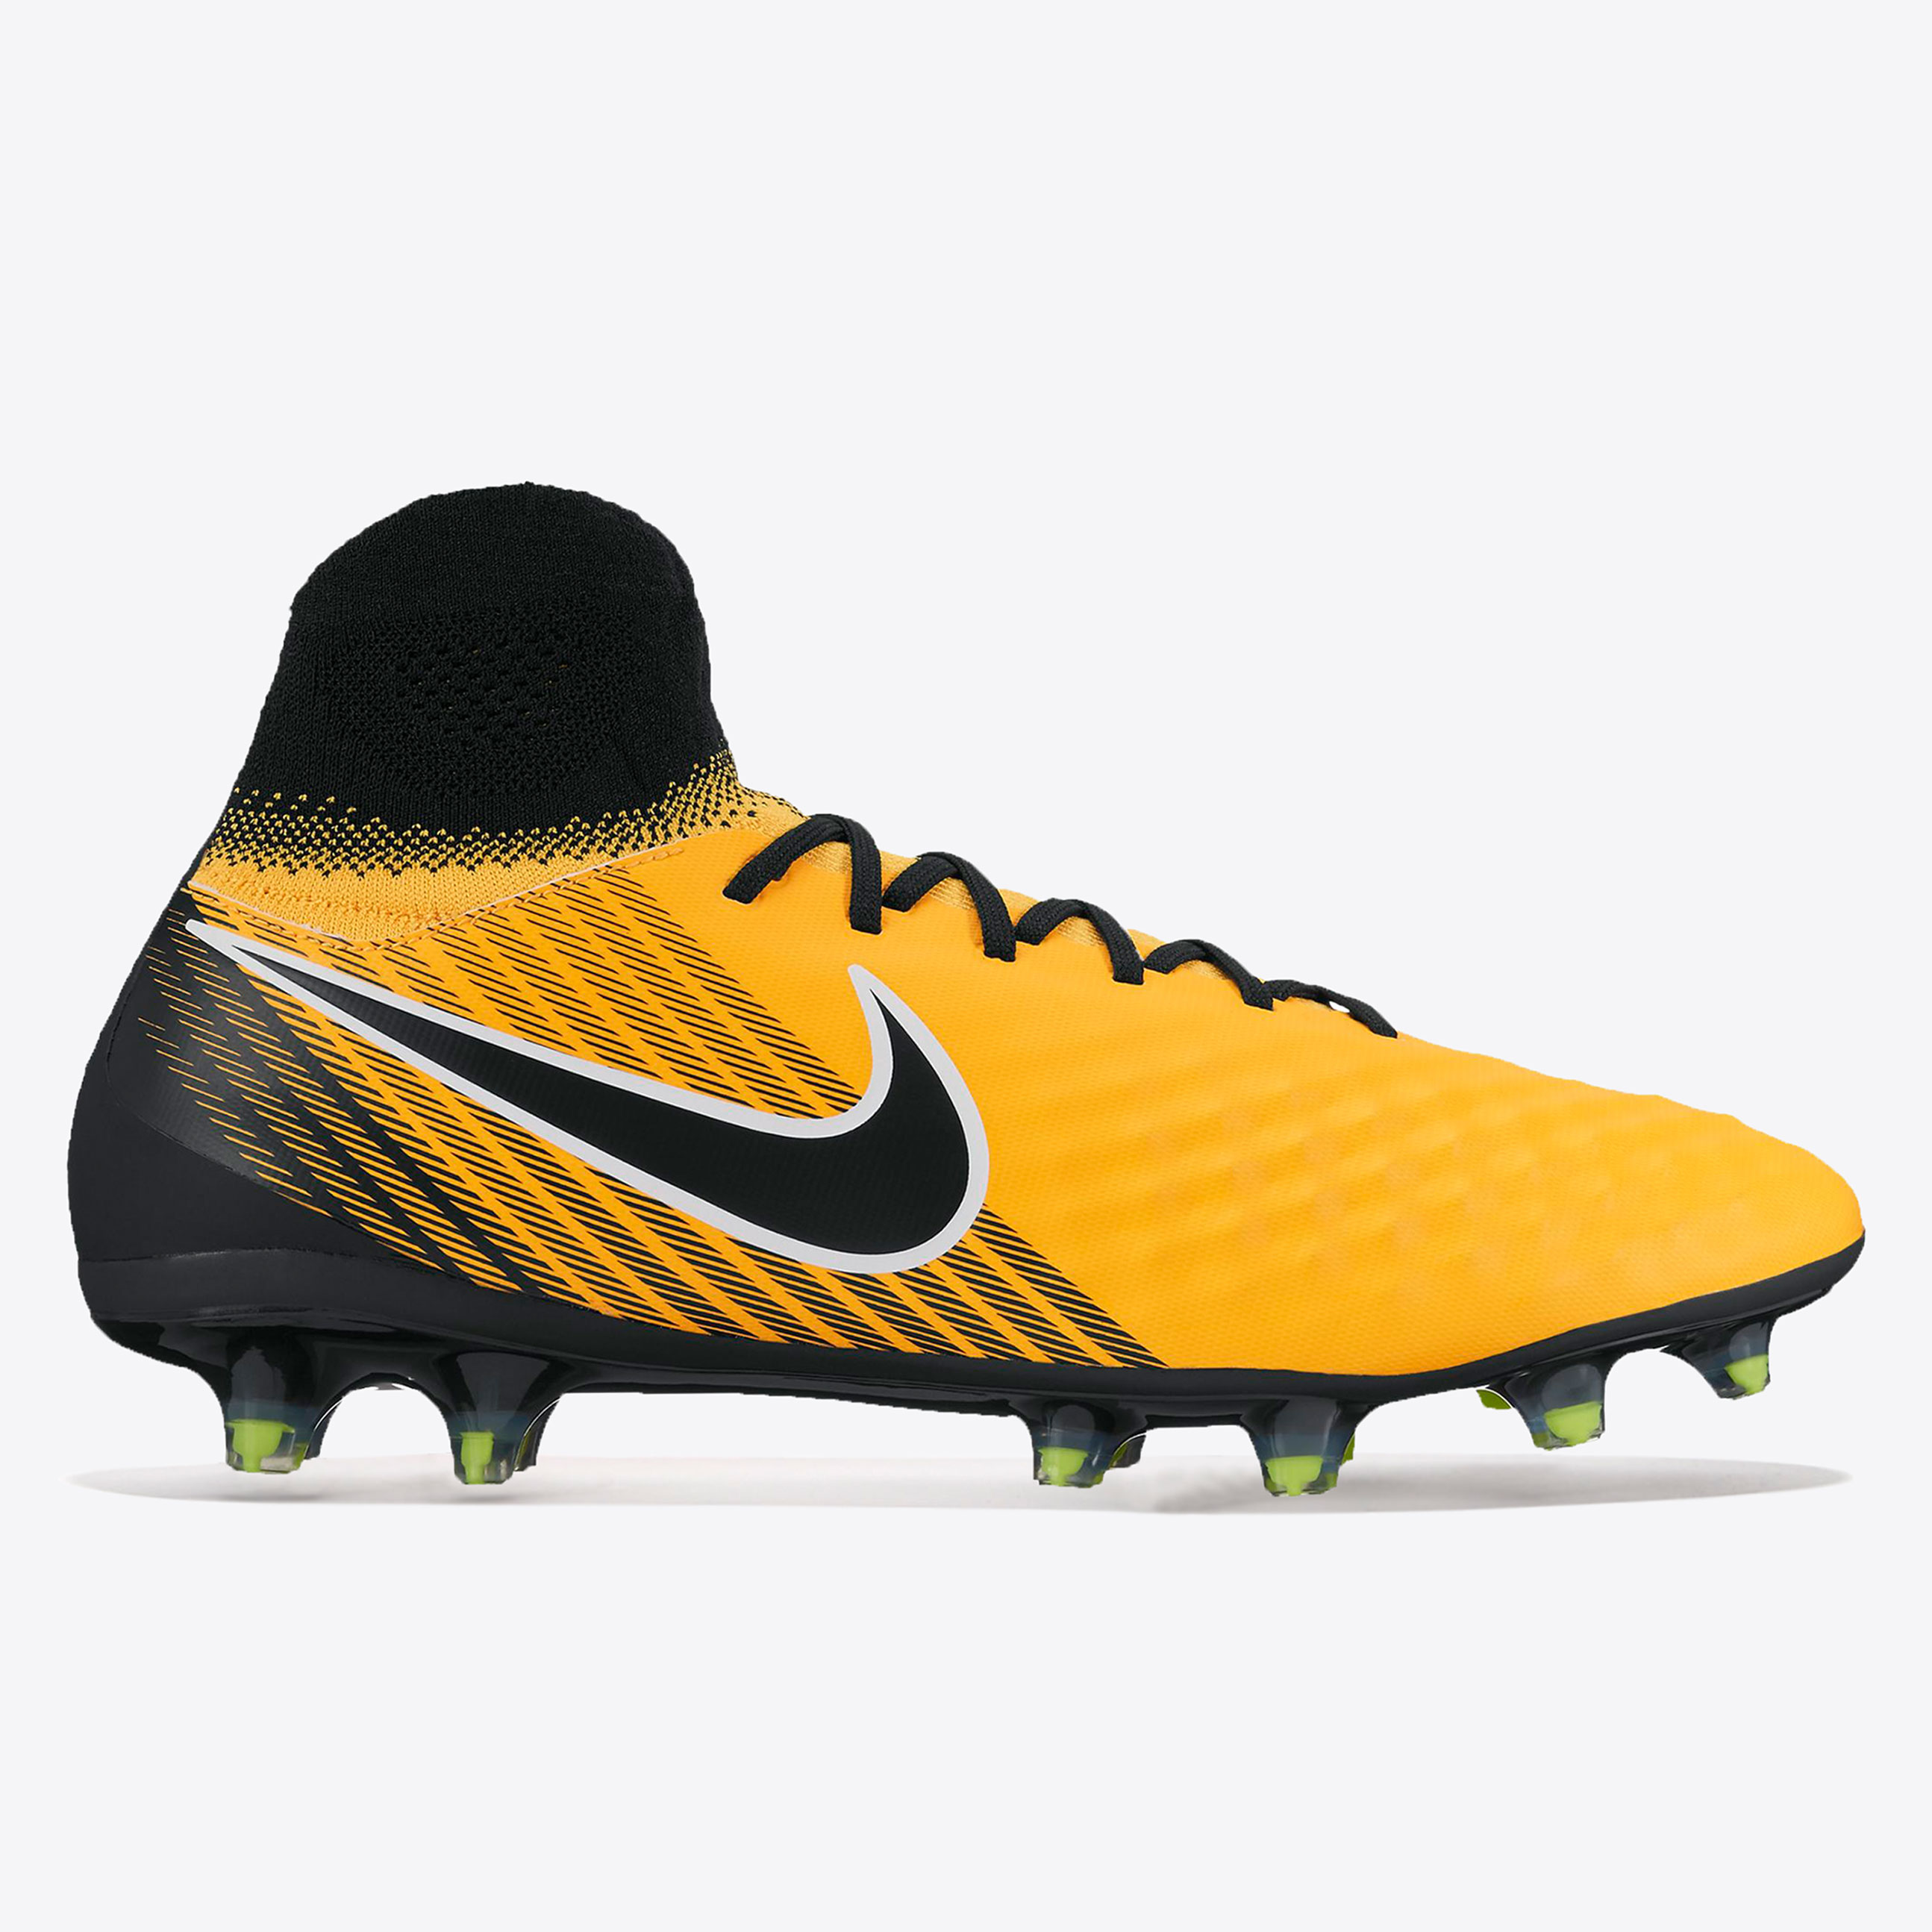 Nike Magista Orden II Firm Ground Football Boots - Laser Orange/Black/